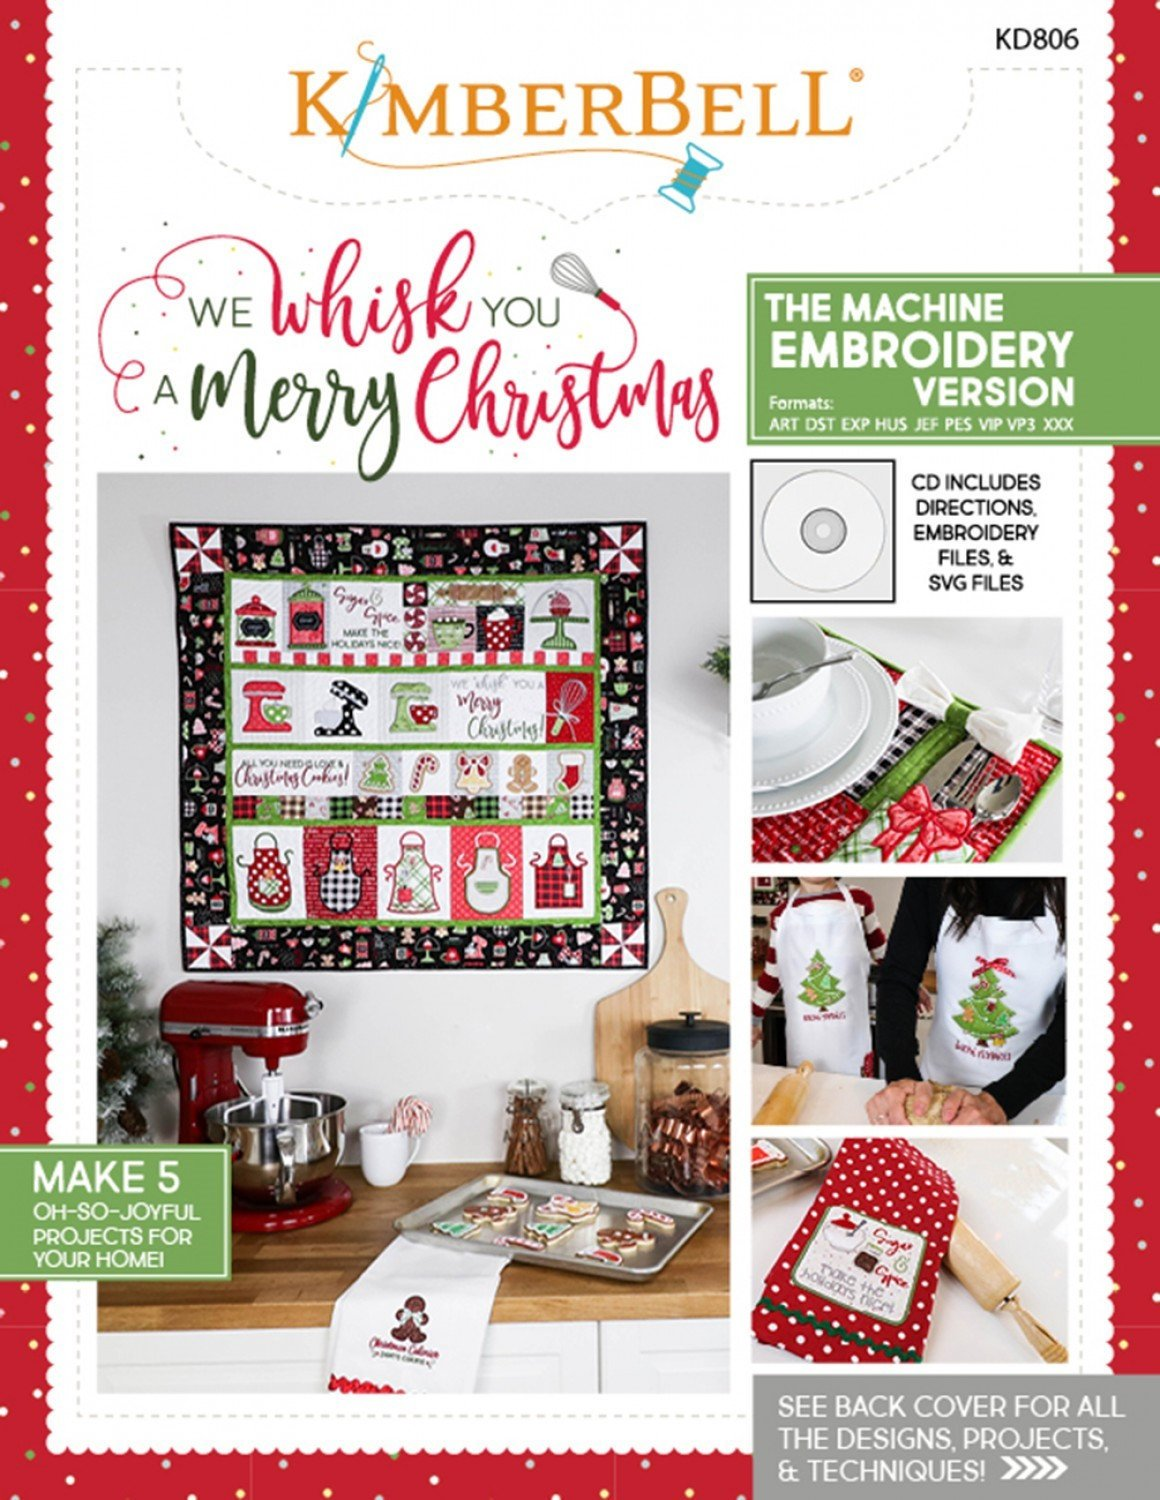 We Whisk You a Merry Christmas Machine Embroidery Pattern - Kimberbell Designs